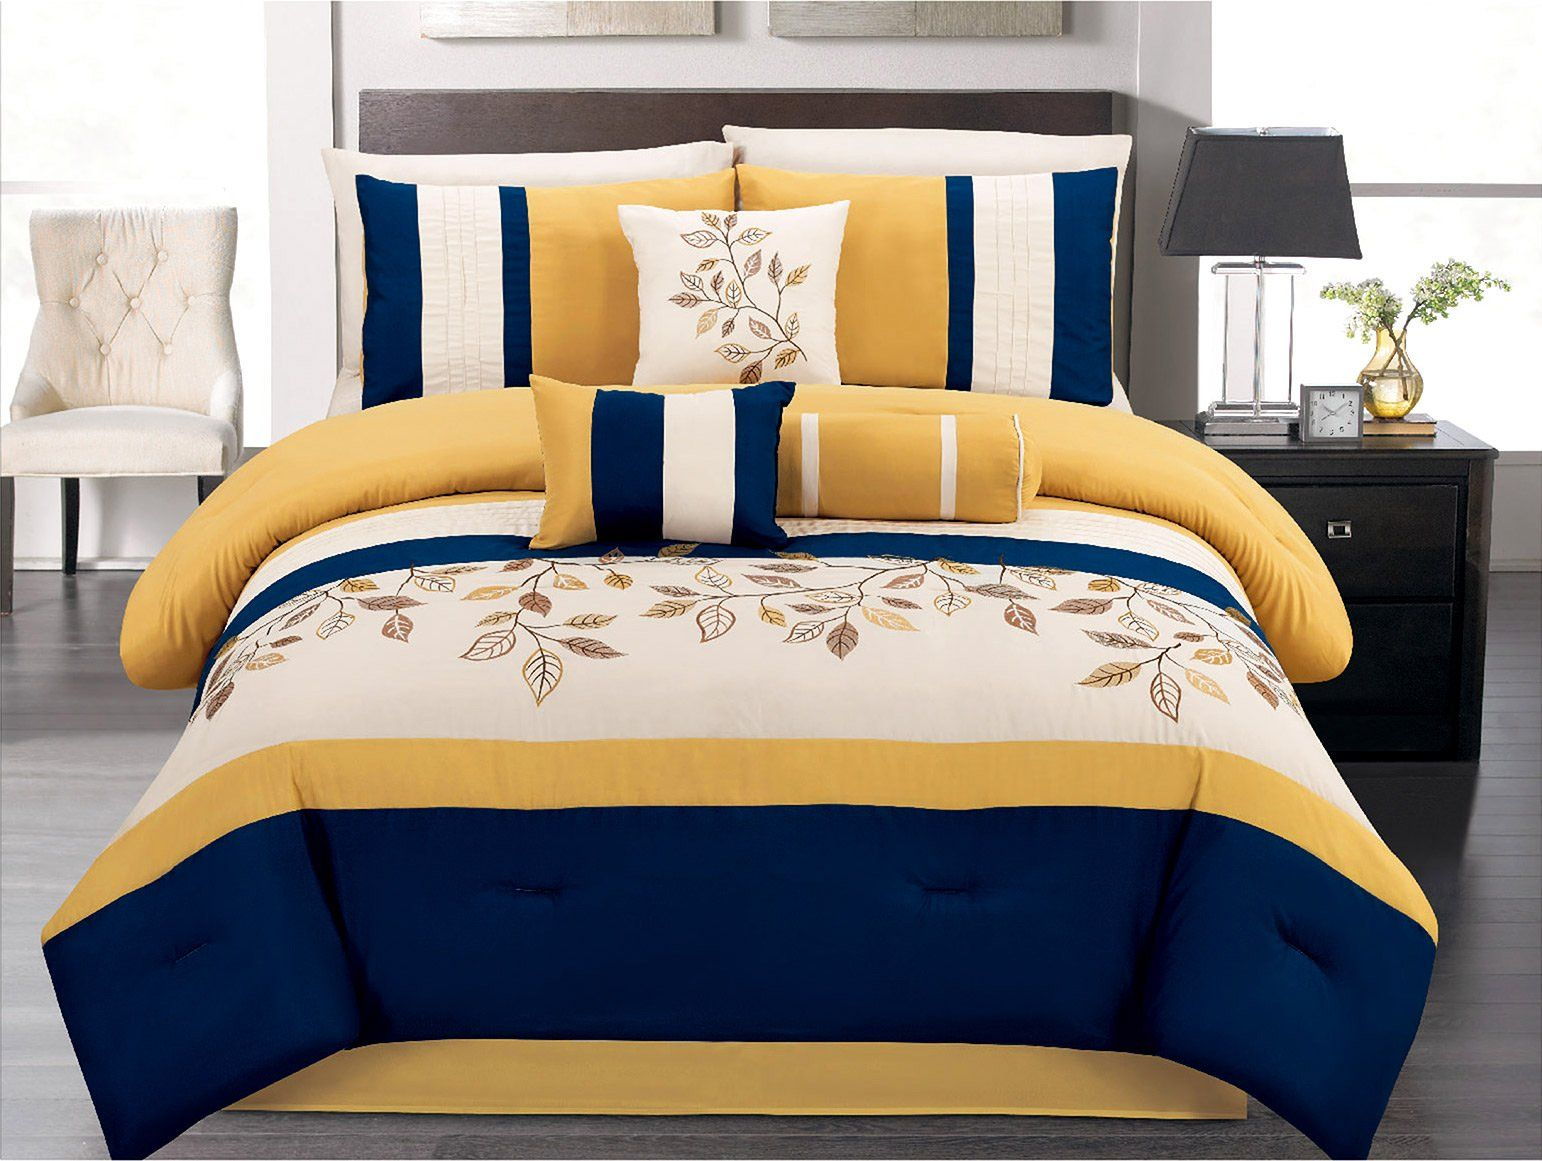 7 Pieces Luxury Navy Blue Yellow Off White Embroidered Comforter